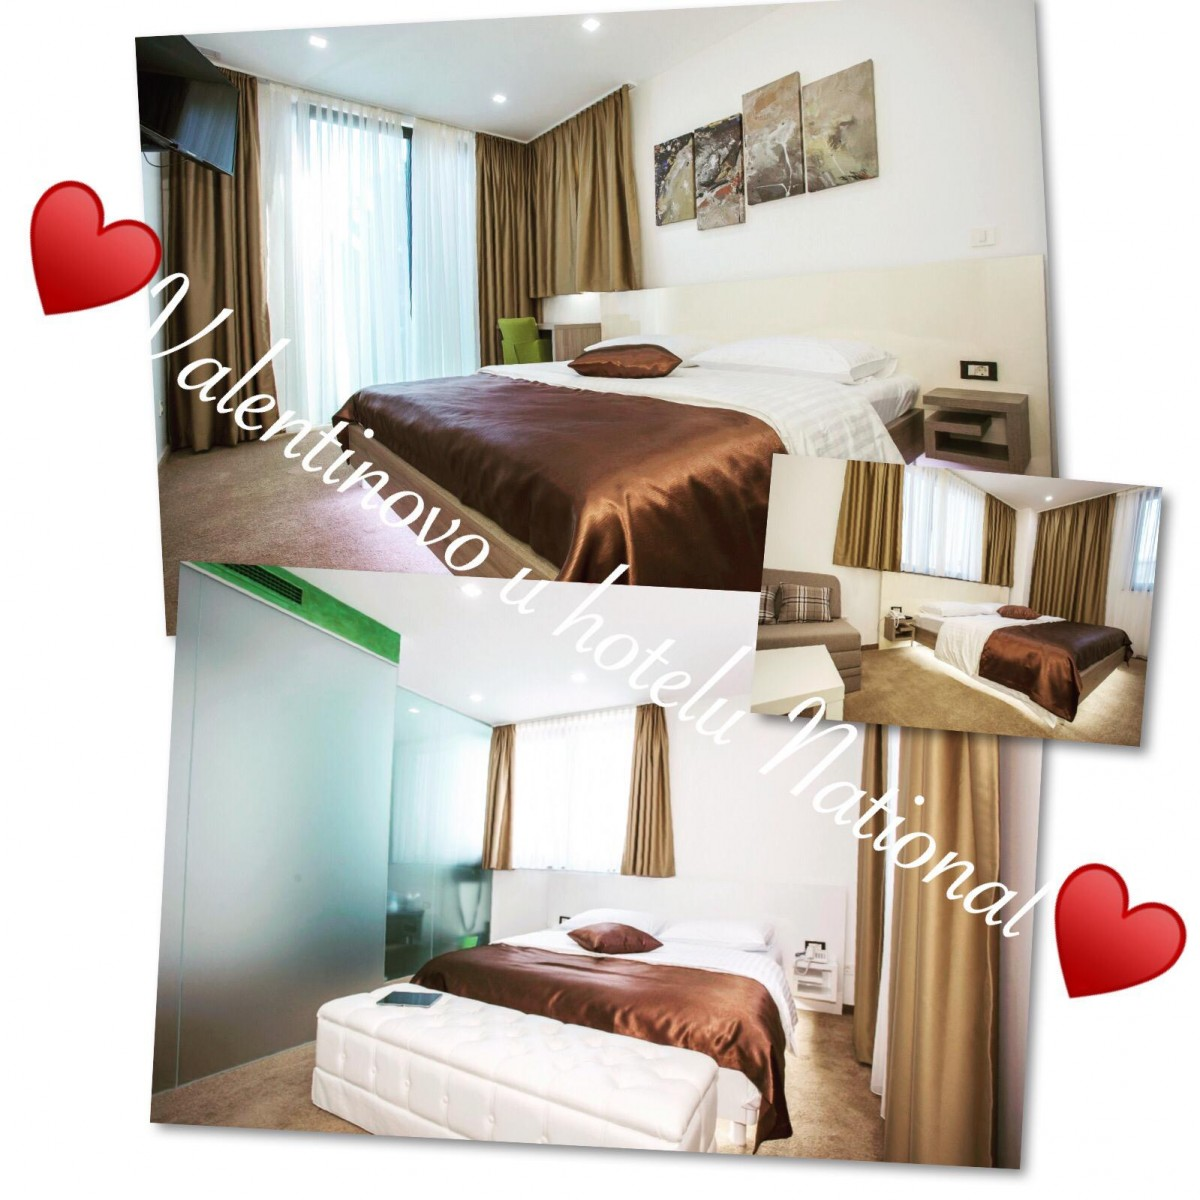 Valentines week in hotel National from 11.02.-17.02.